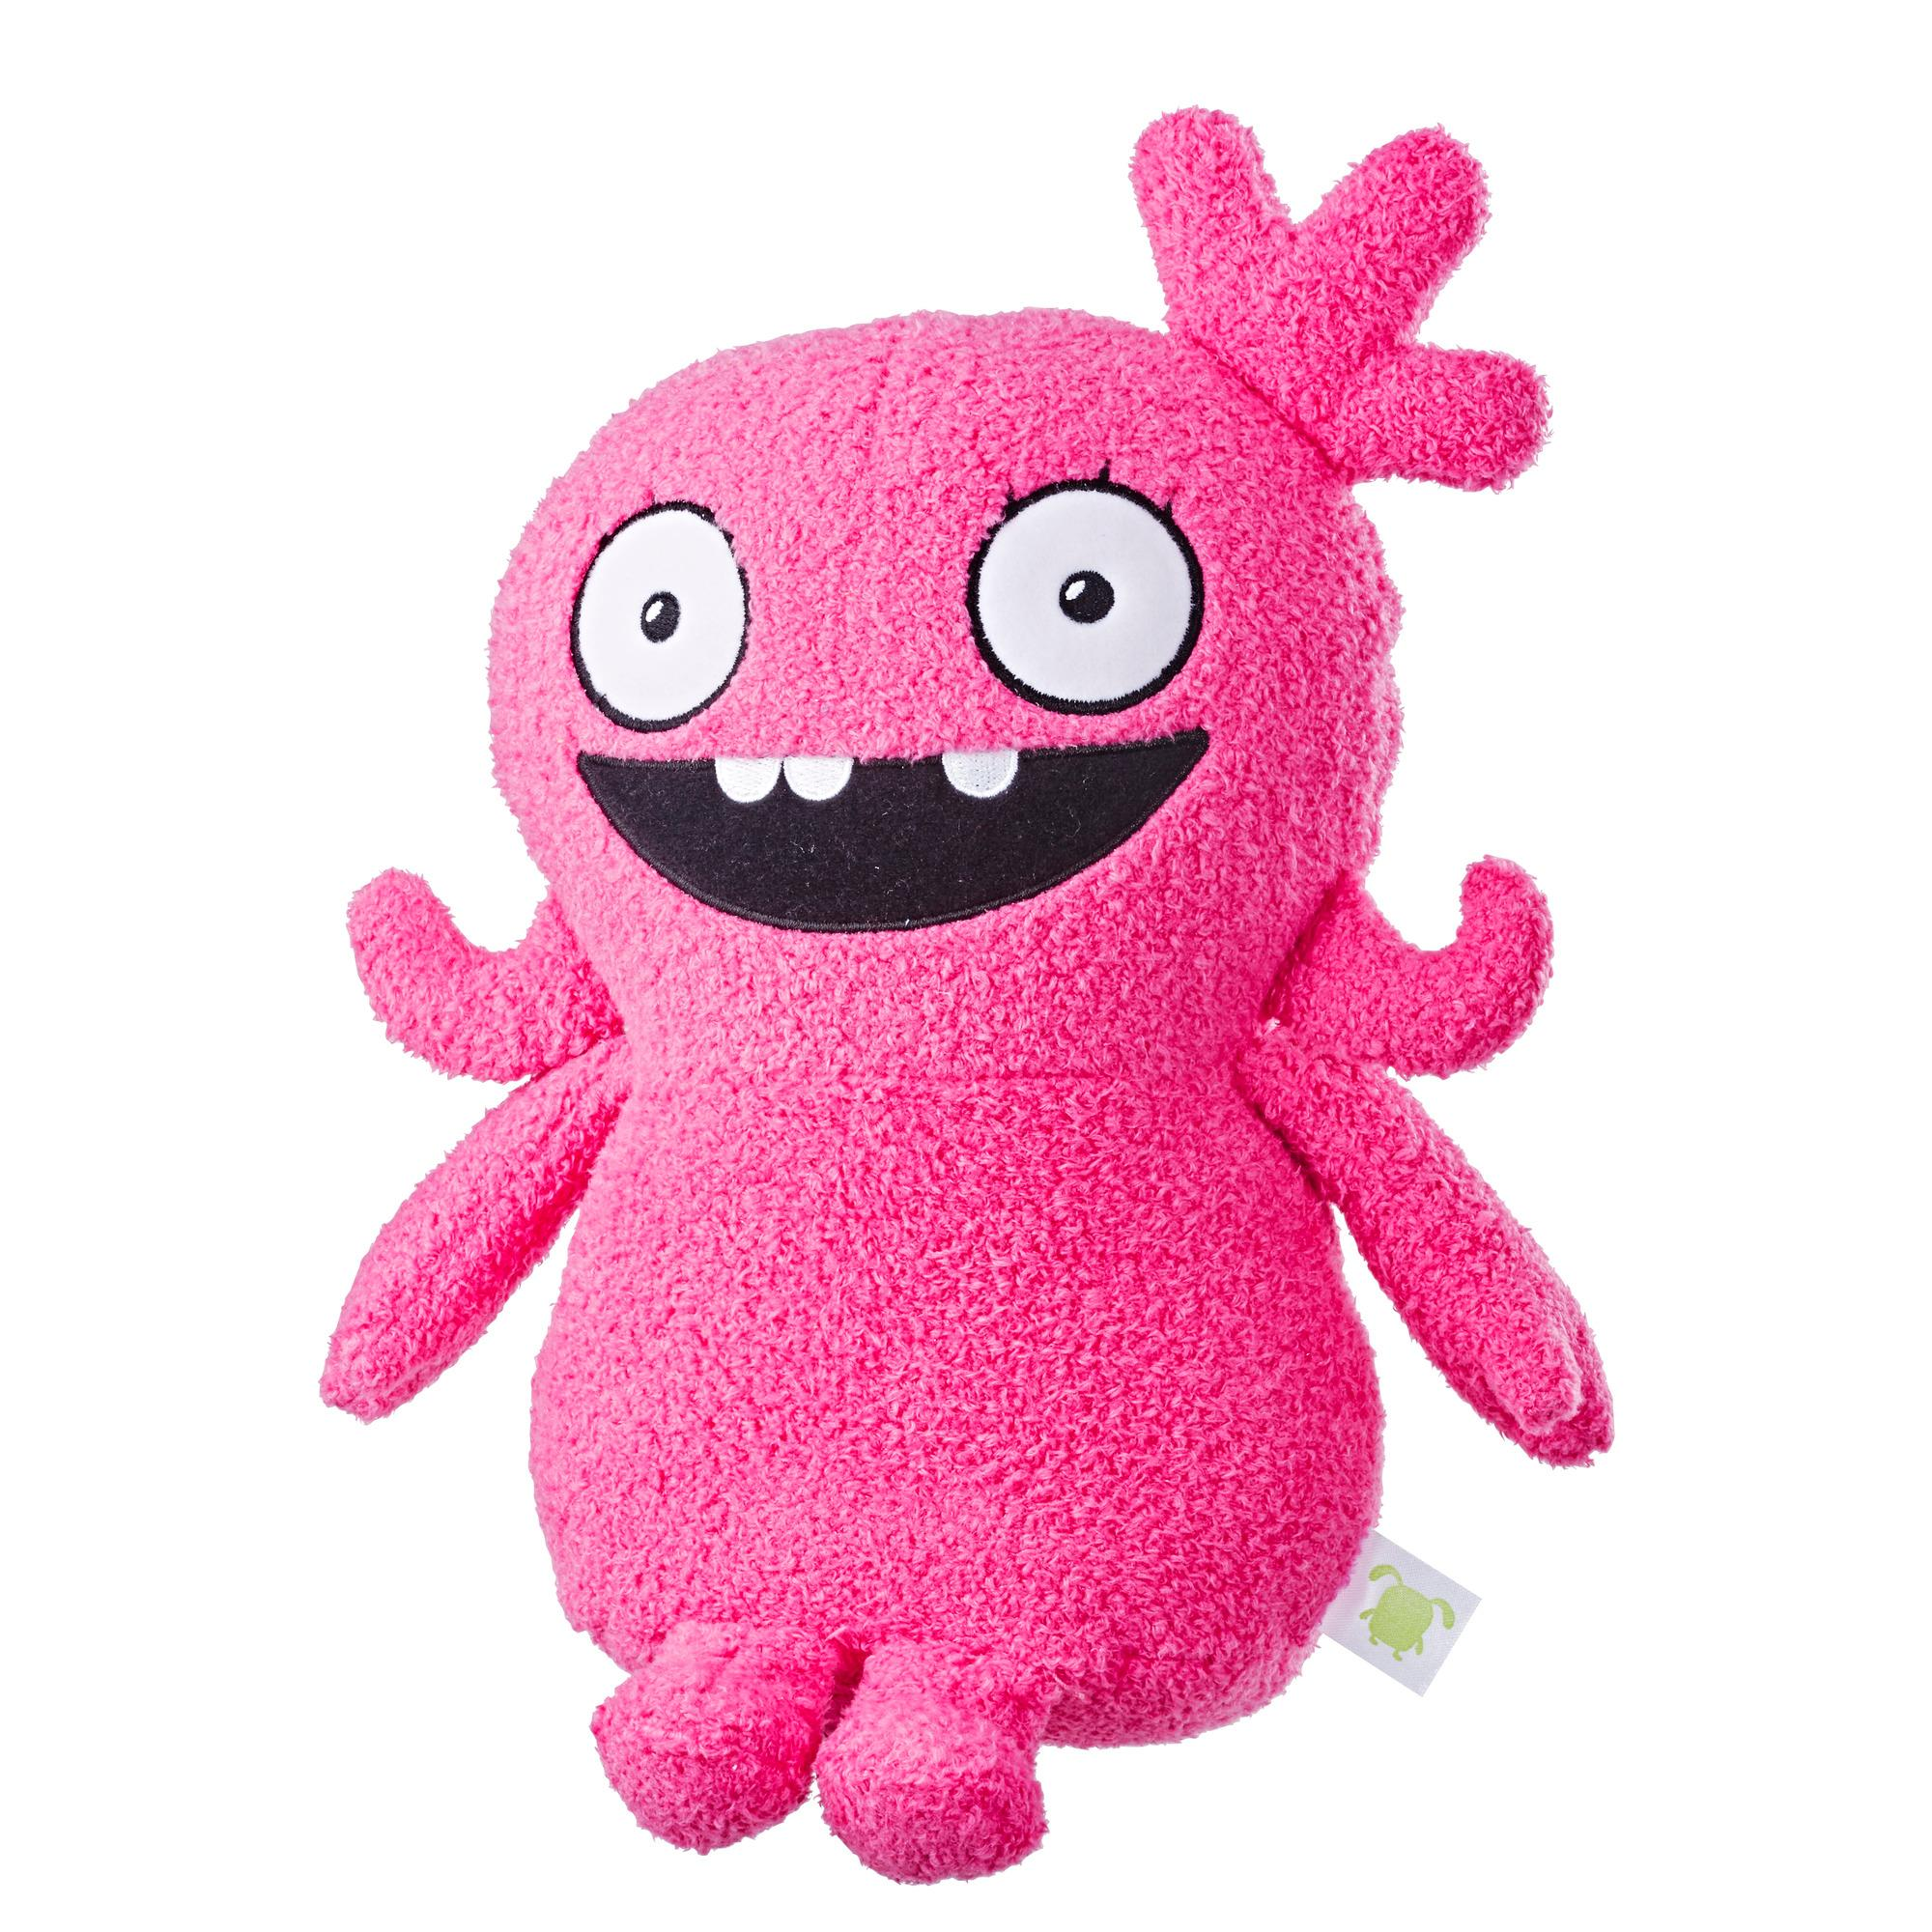 UglyDolls Feature Sounds Moxy, Stuffed Plush Toy that Talks, 28 cm. tall